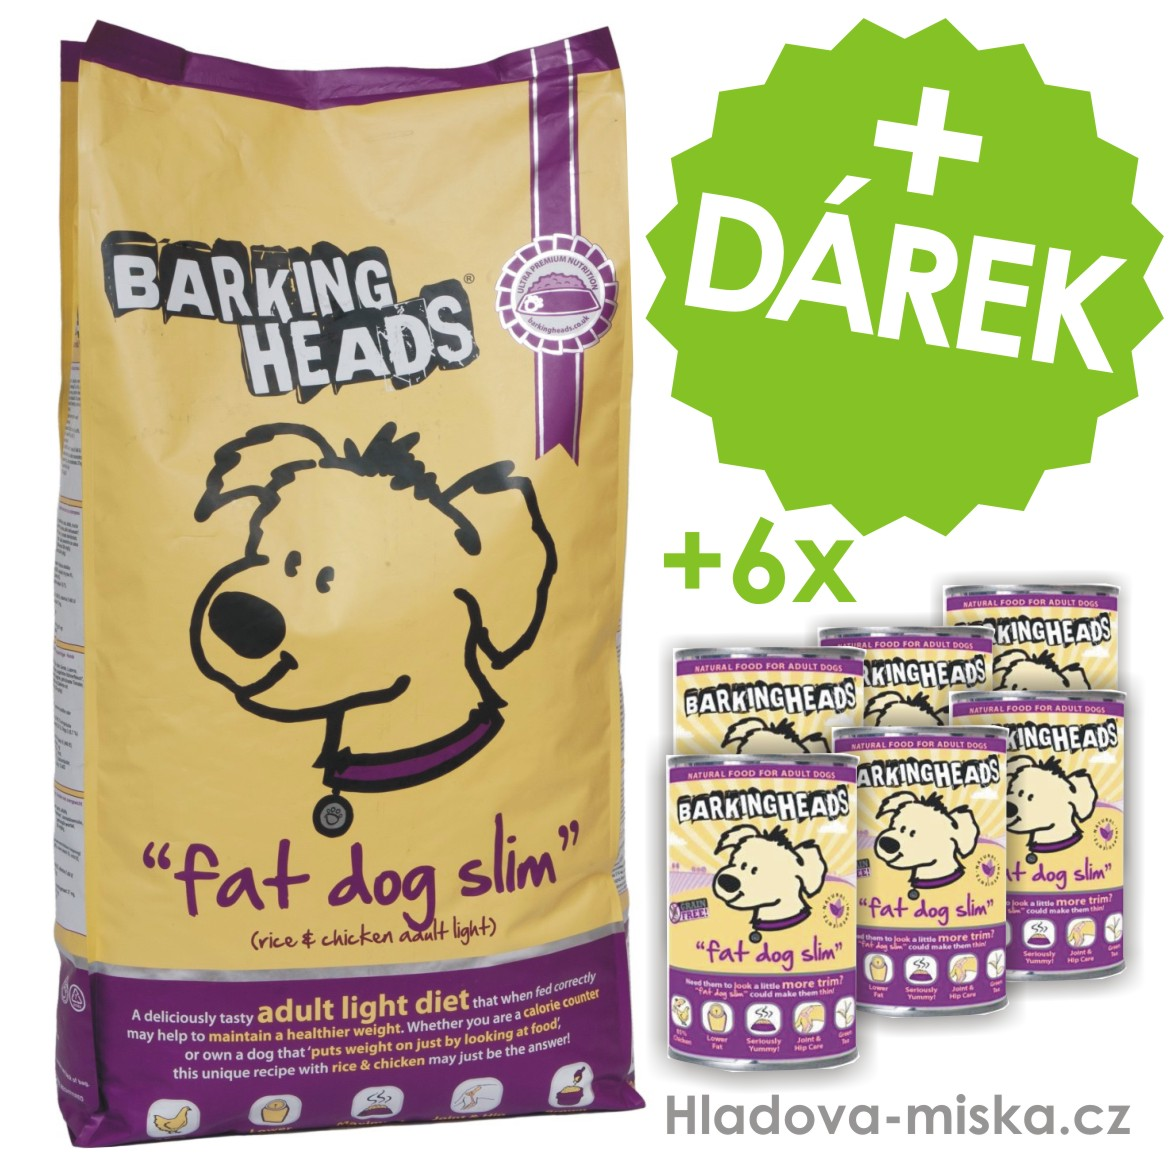 BARKING HEADS Fat Dog Slim 12kg + ZDARMA 6x konzerva!